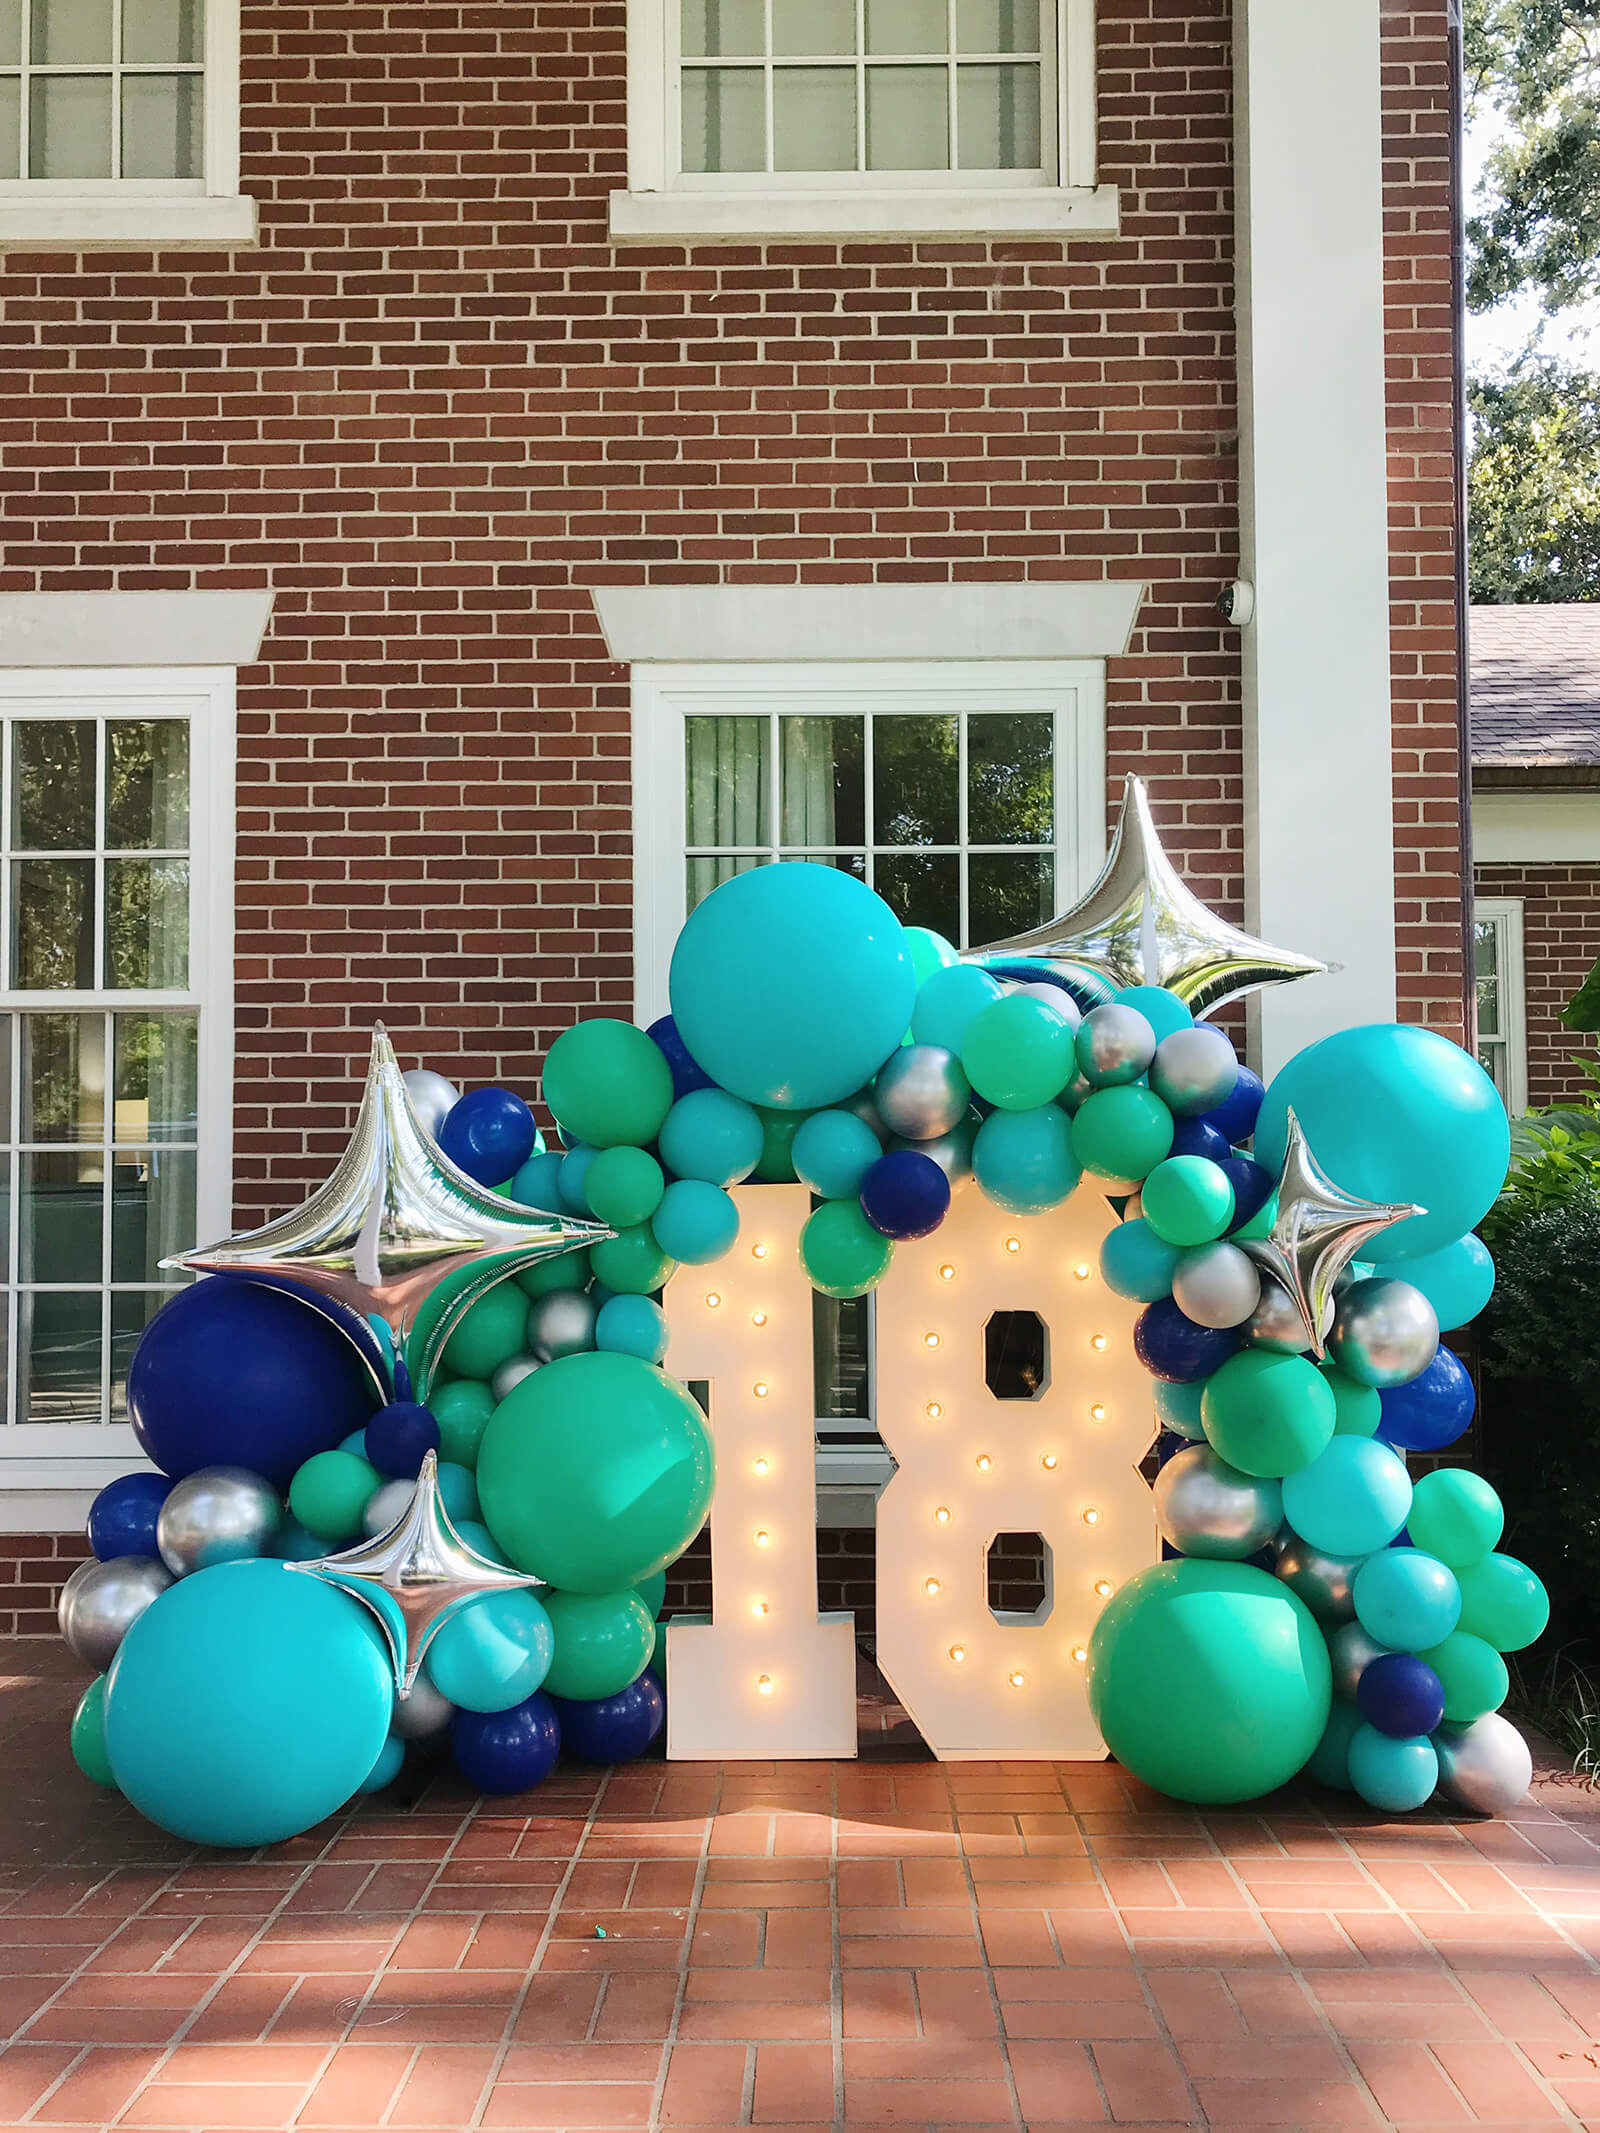 18th birthday front porch celebration; Alpha-Lit marquee numbers with sea blues theme balloon arch installation created by Just Peachy in Little Rock, Arkansas.